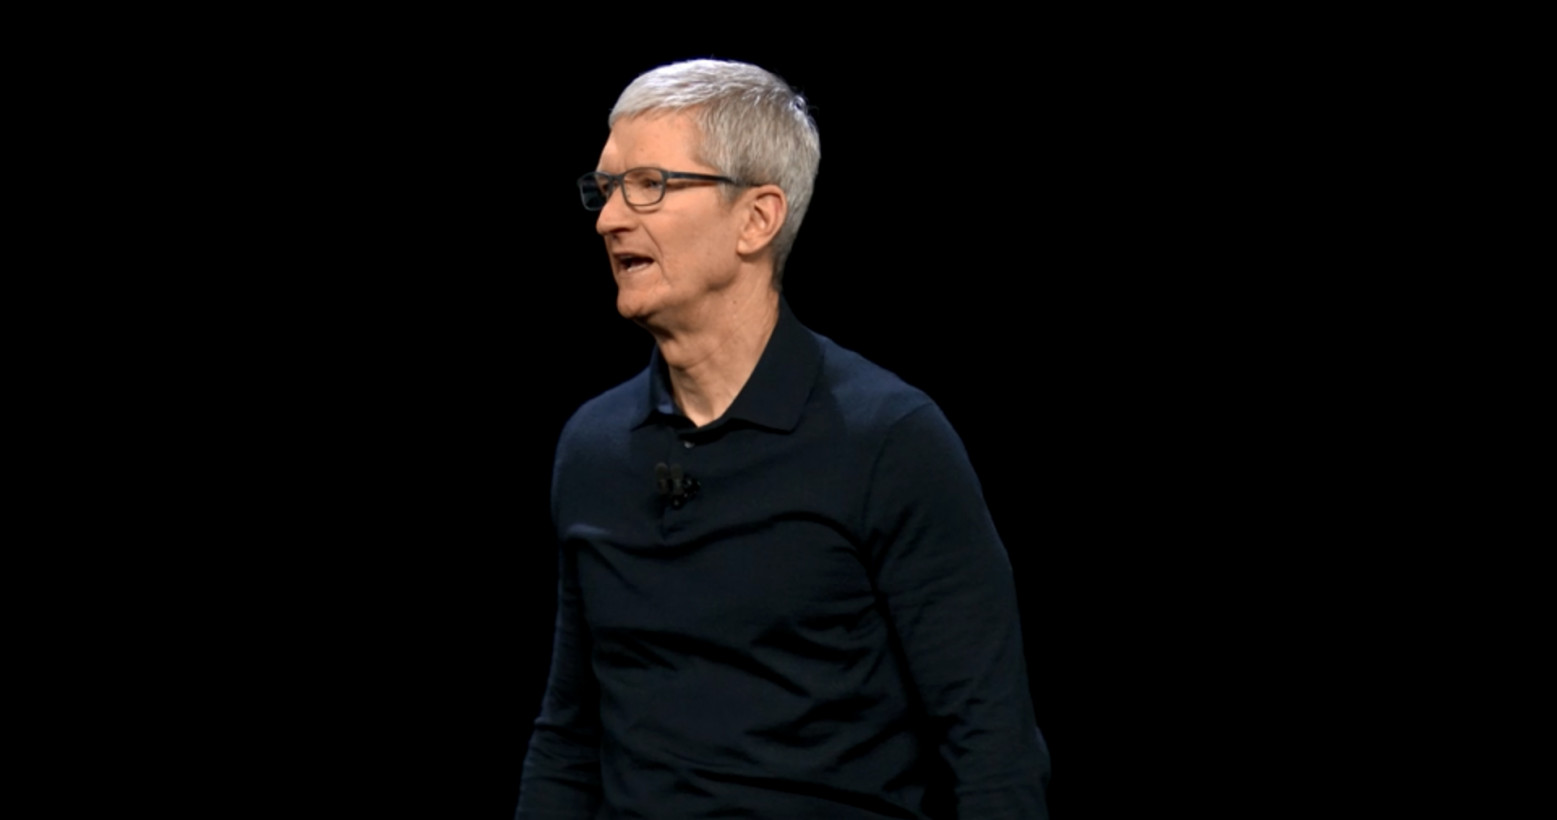 Tim Cook calls on tech companies to take responsibility for the 'chaos' they create